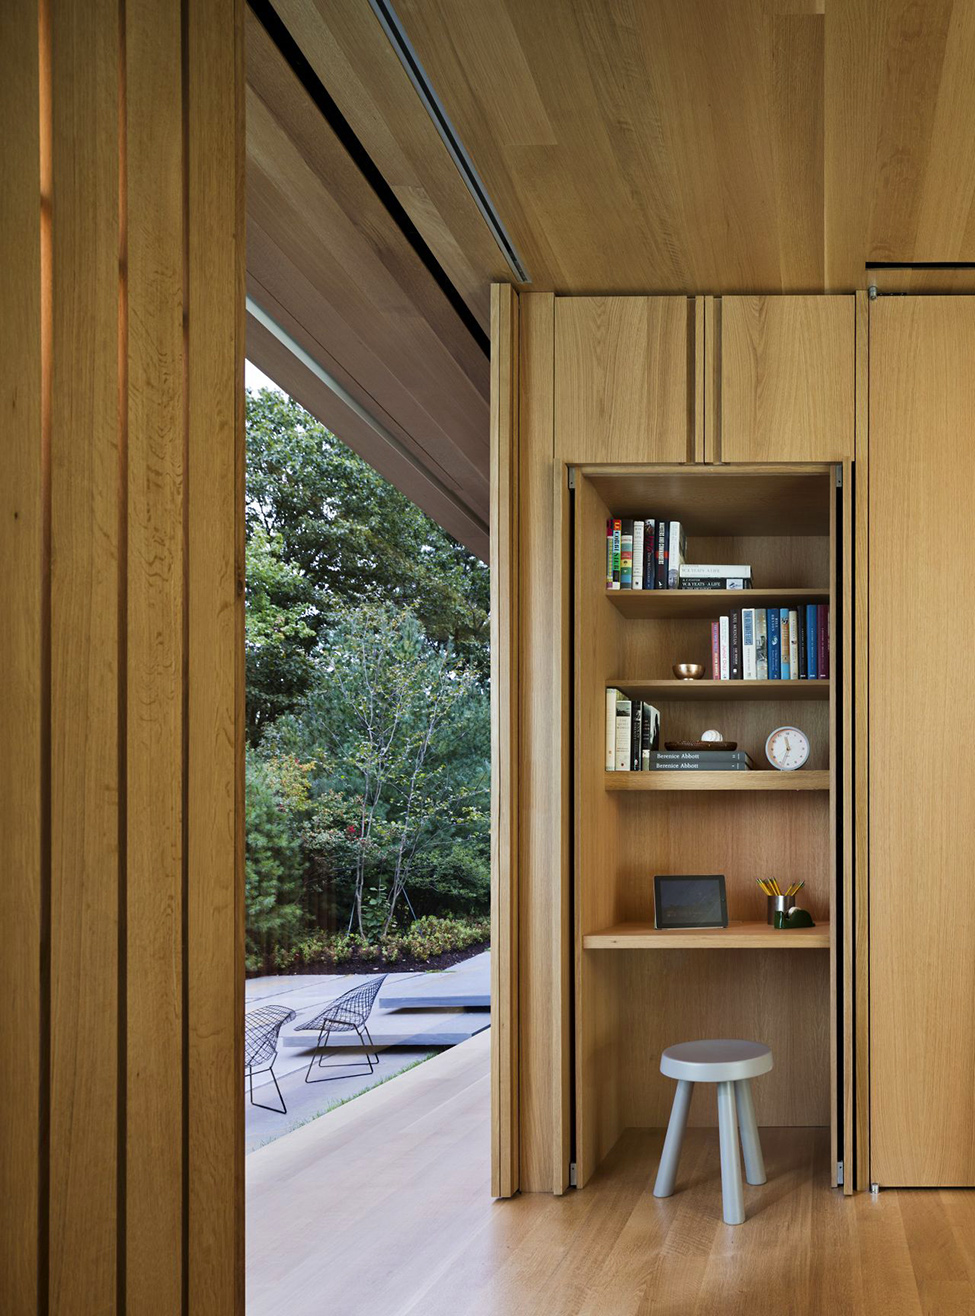 detail shot of a small library LM Guest House by Desai Chia Architecture in New York-Contemporary Farnsworth Copy (21)